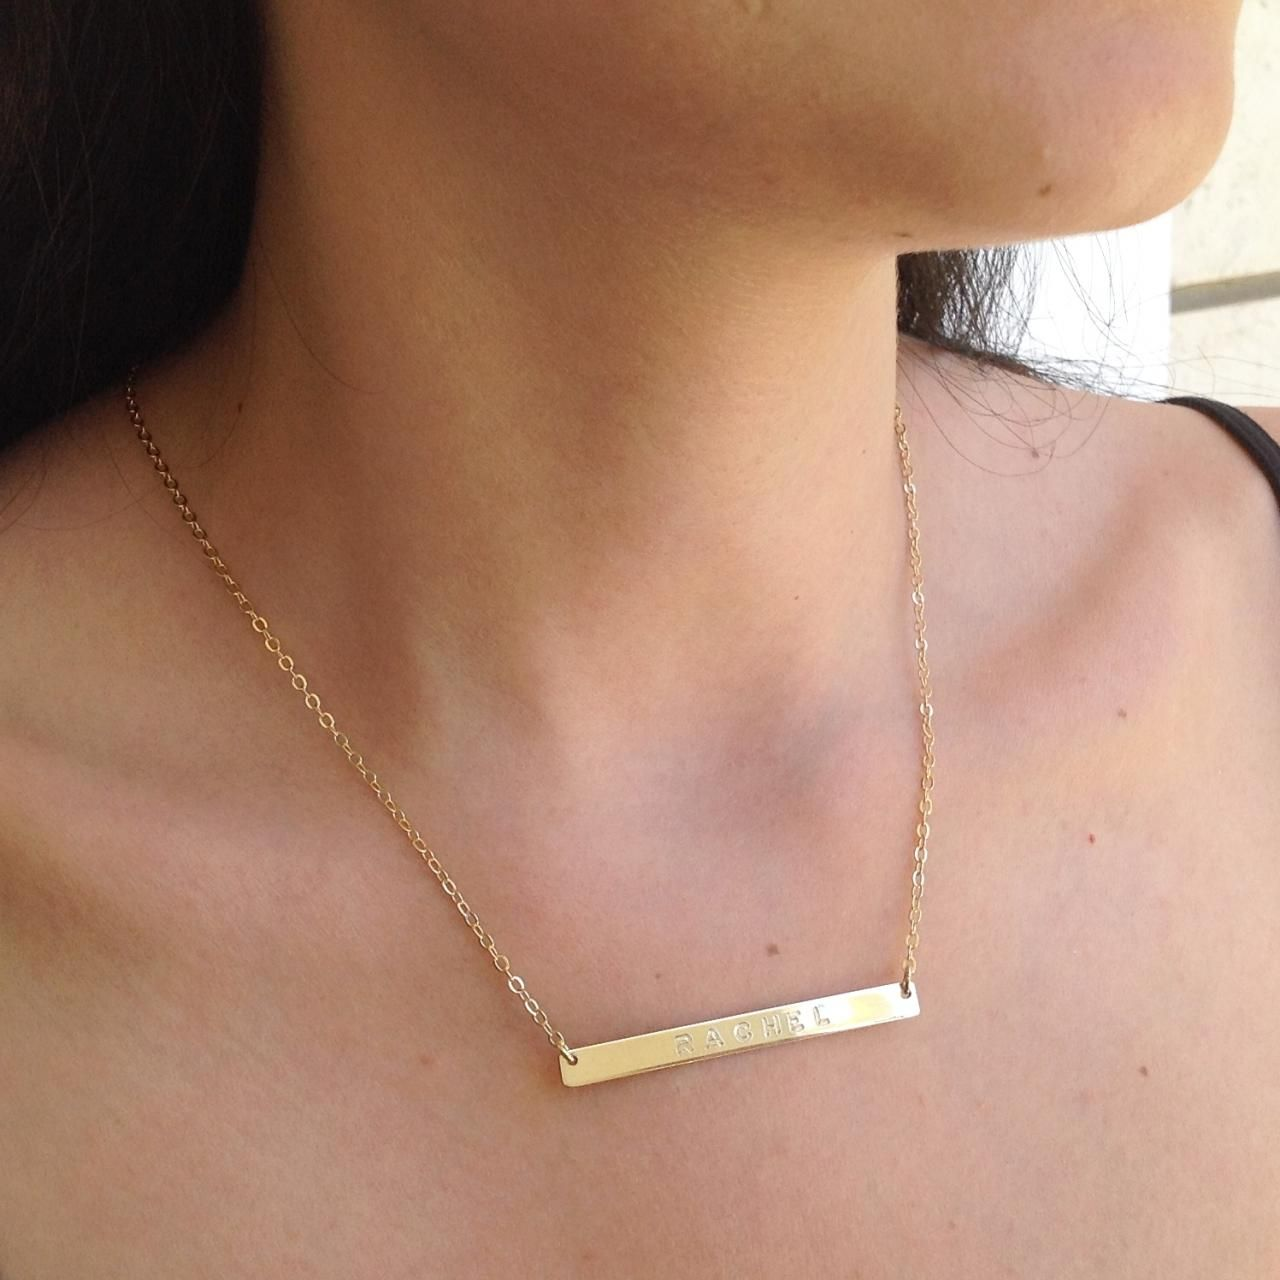 Personalized Bar Necklace, Gold Nameplate Necklace, Custom Bar Necklace, Gold Filled Necklace B014 on Luulla